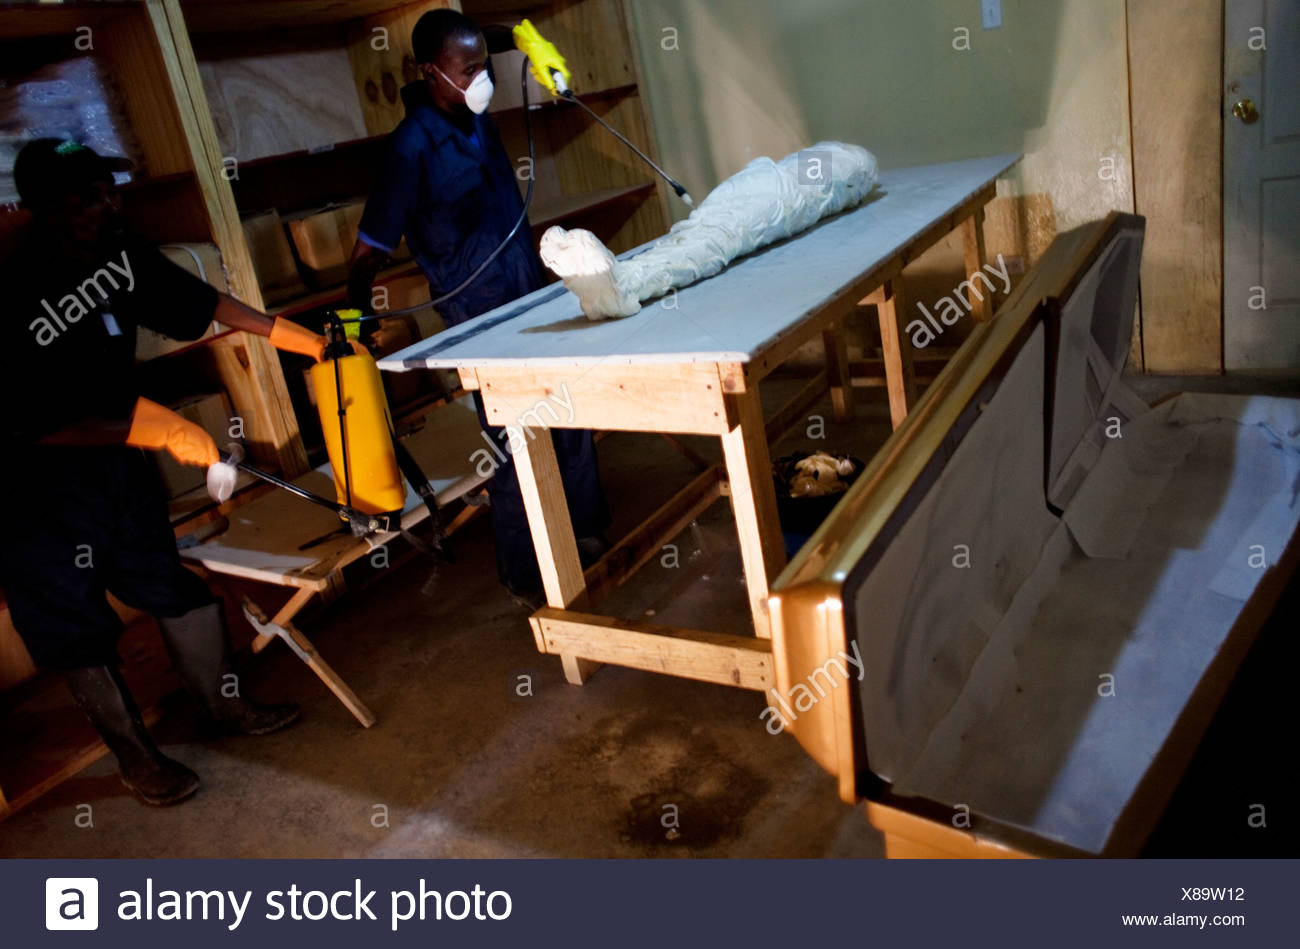 Hospital workers disinfect a cholera corpse. - Stock Image